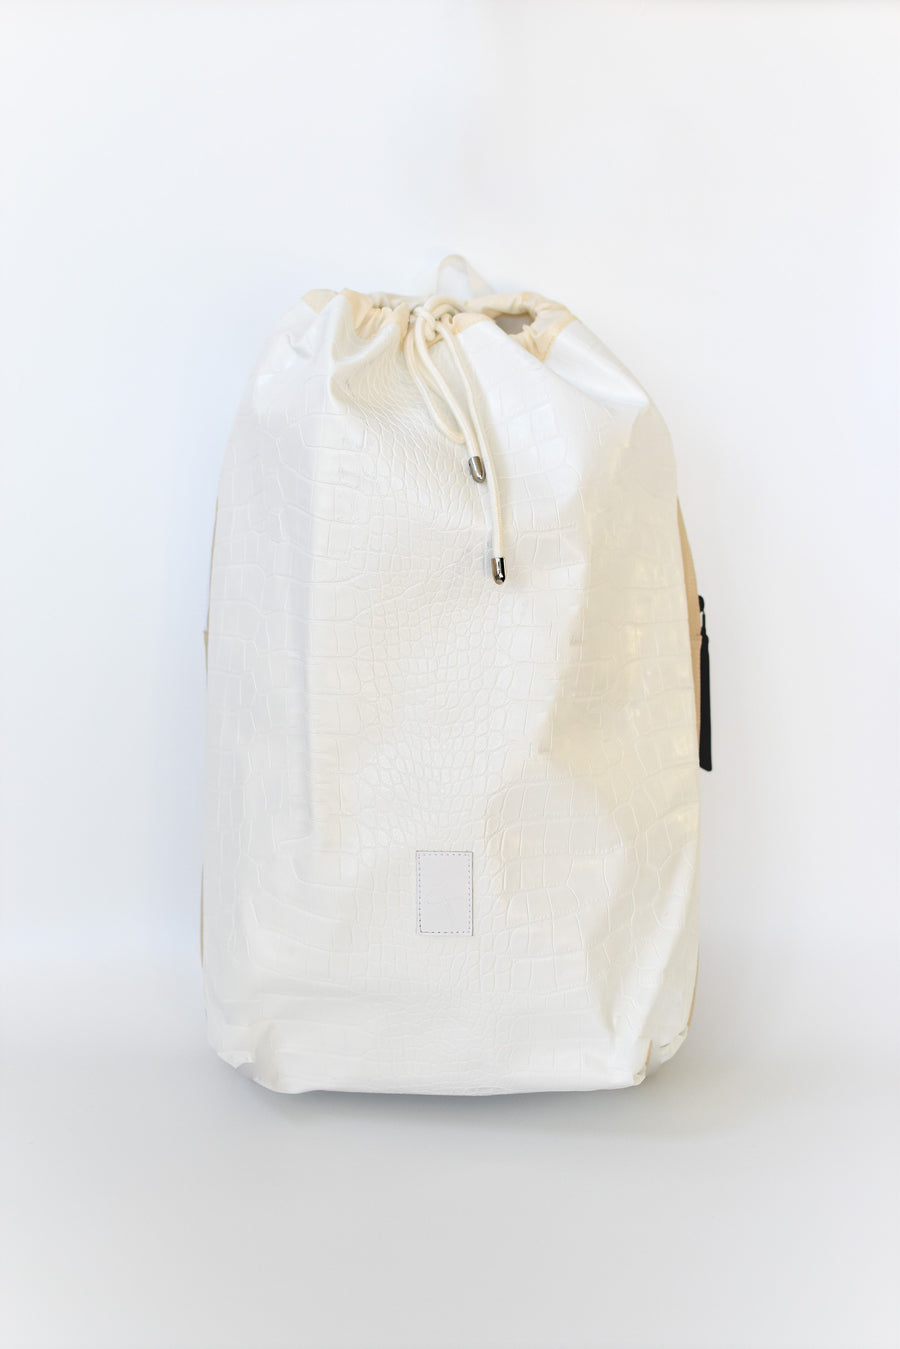 Off white croc embossed Casselberry backpack with cinch top and back zipper compartment.